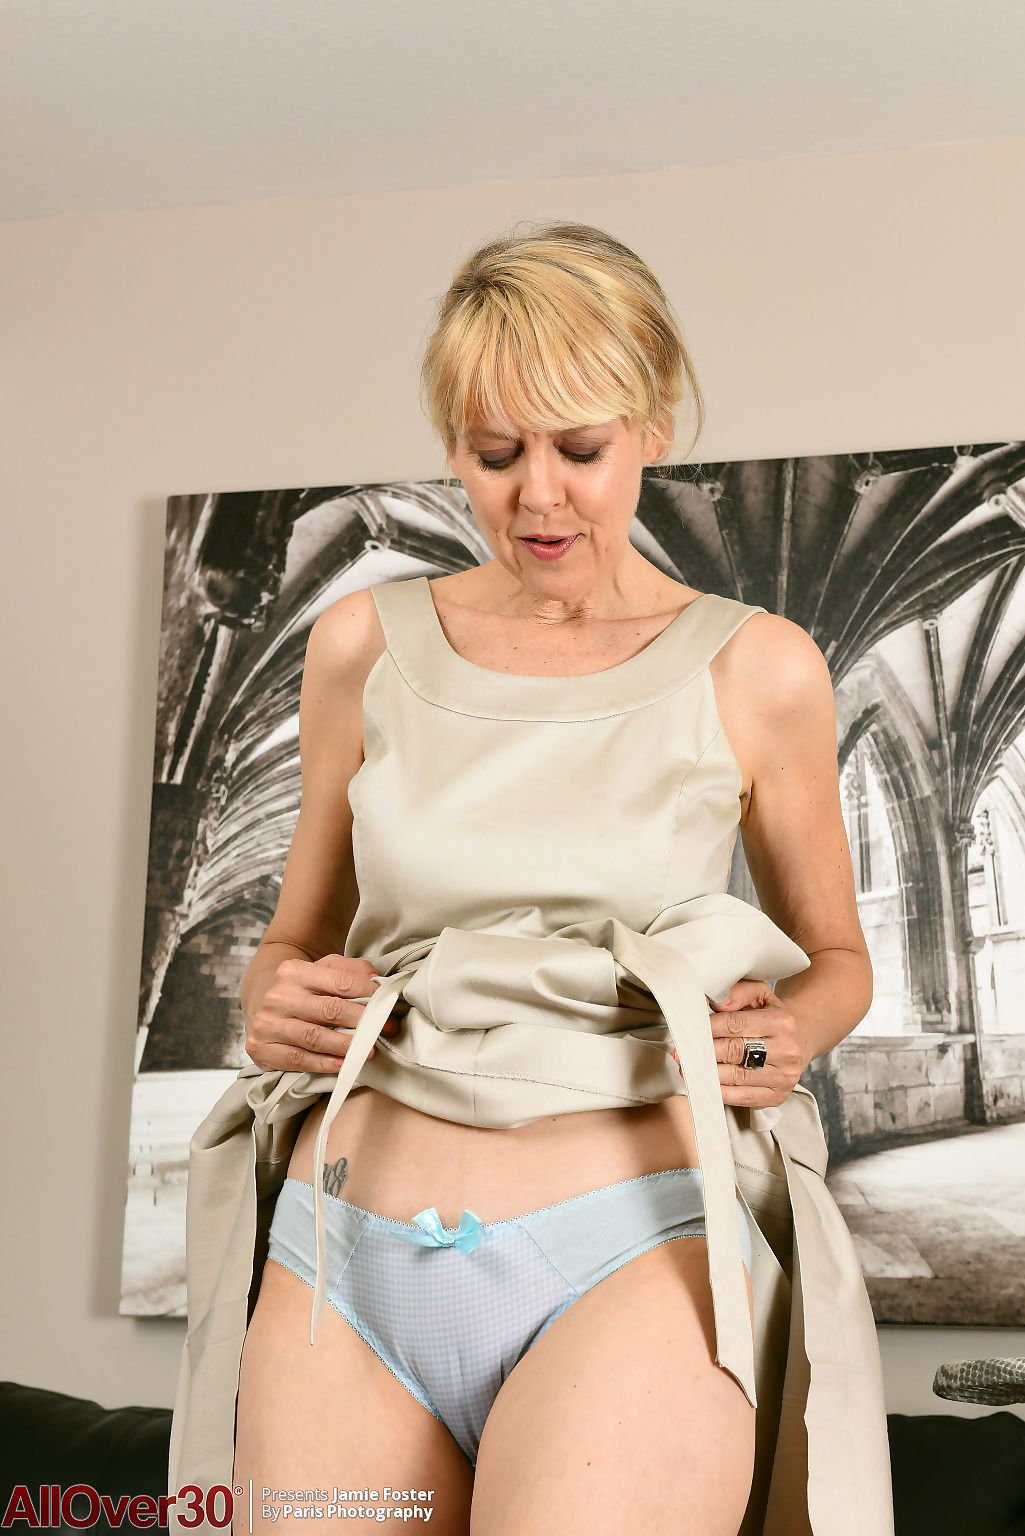 Jamie foster flirty housework - part 20